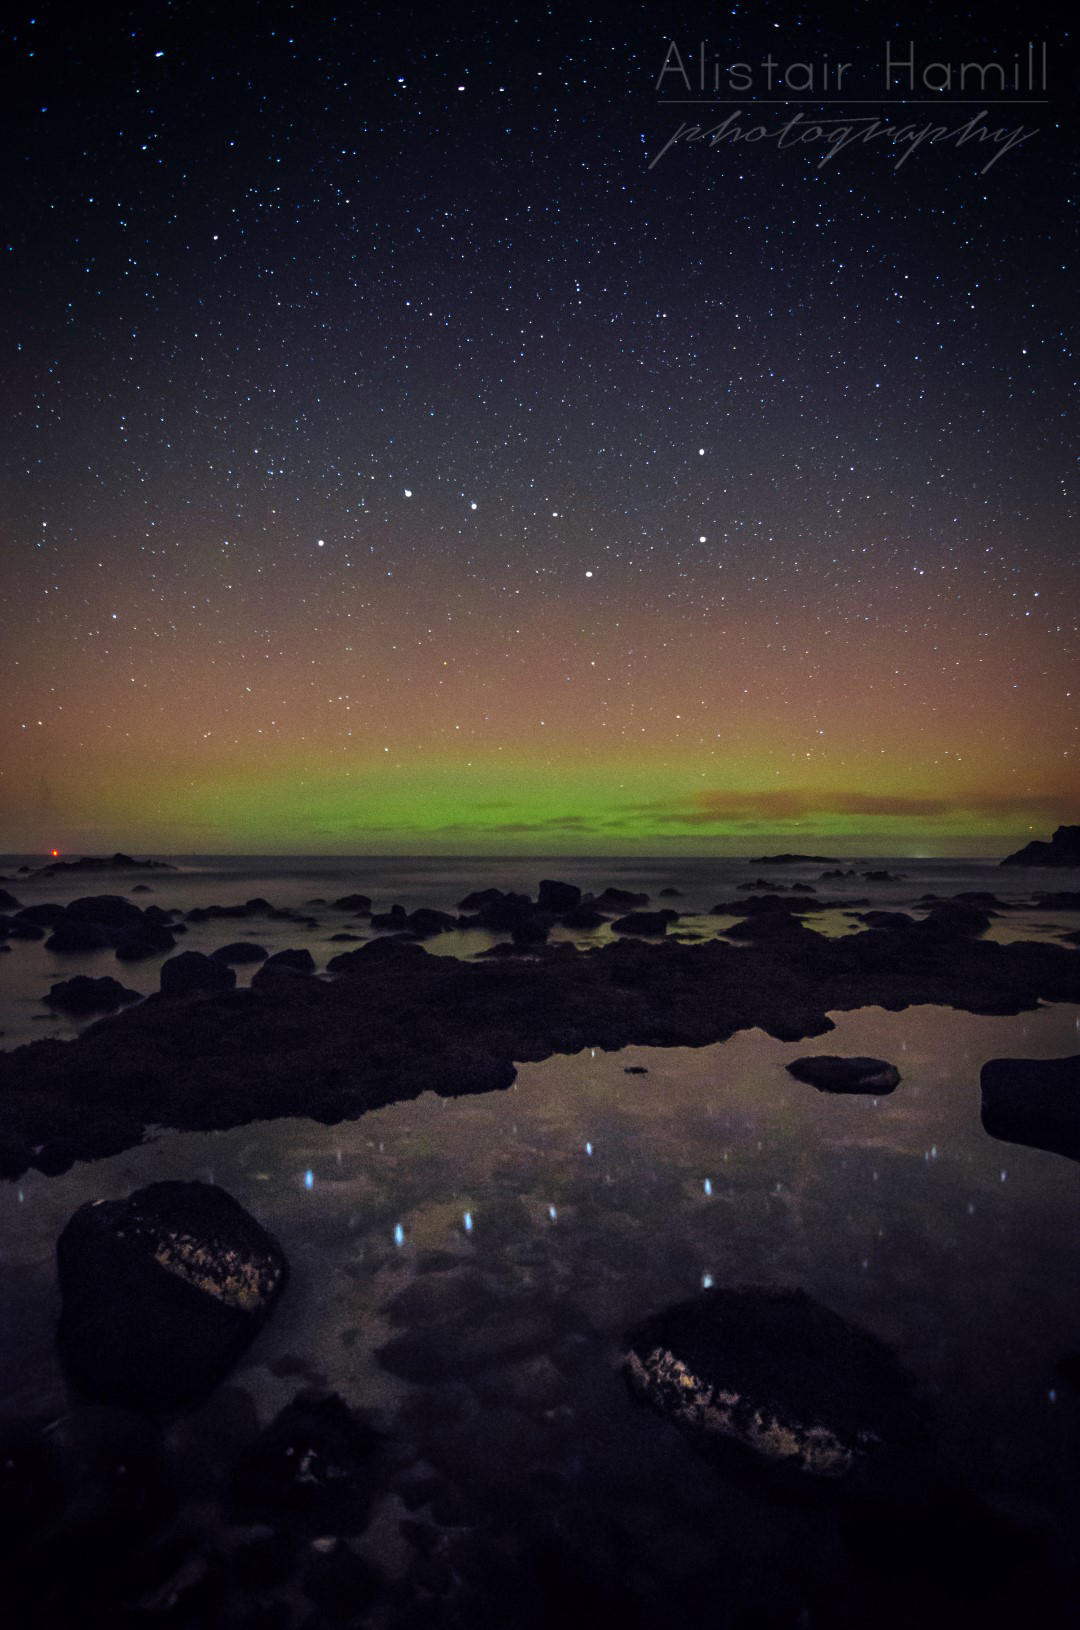 The Plough reflects in the rock pool. Click on this image to view it all in one screen.